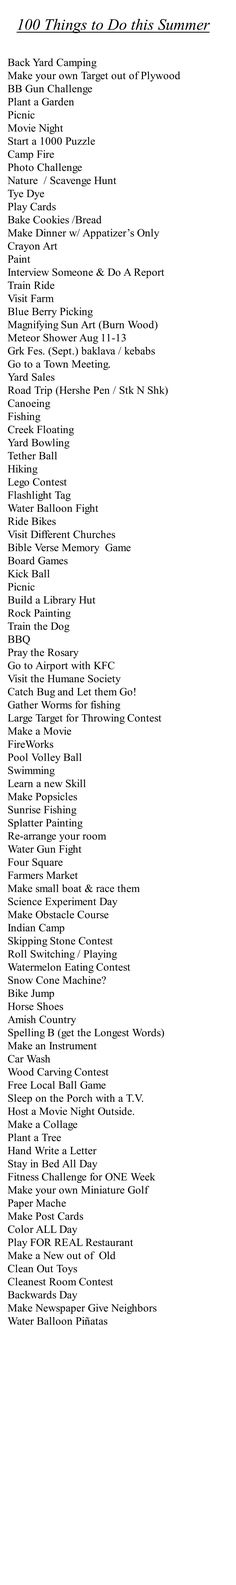 Summer list: 100 Things to Do This Summer. A great list for families. Things to do with the kids. yard sales--I know my friends are laughing) we wouldn't do--but several really good ones. Summer Goals, Summer Time, Summer Fun, Summer Ideas, Summer Things, Fun Ideas, Summer Nights, Fun Things, Happy Summer